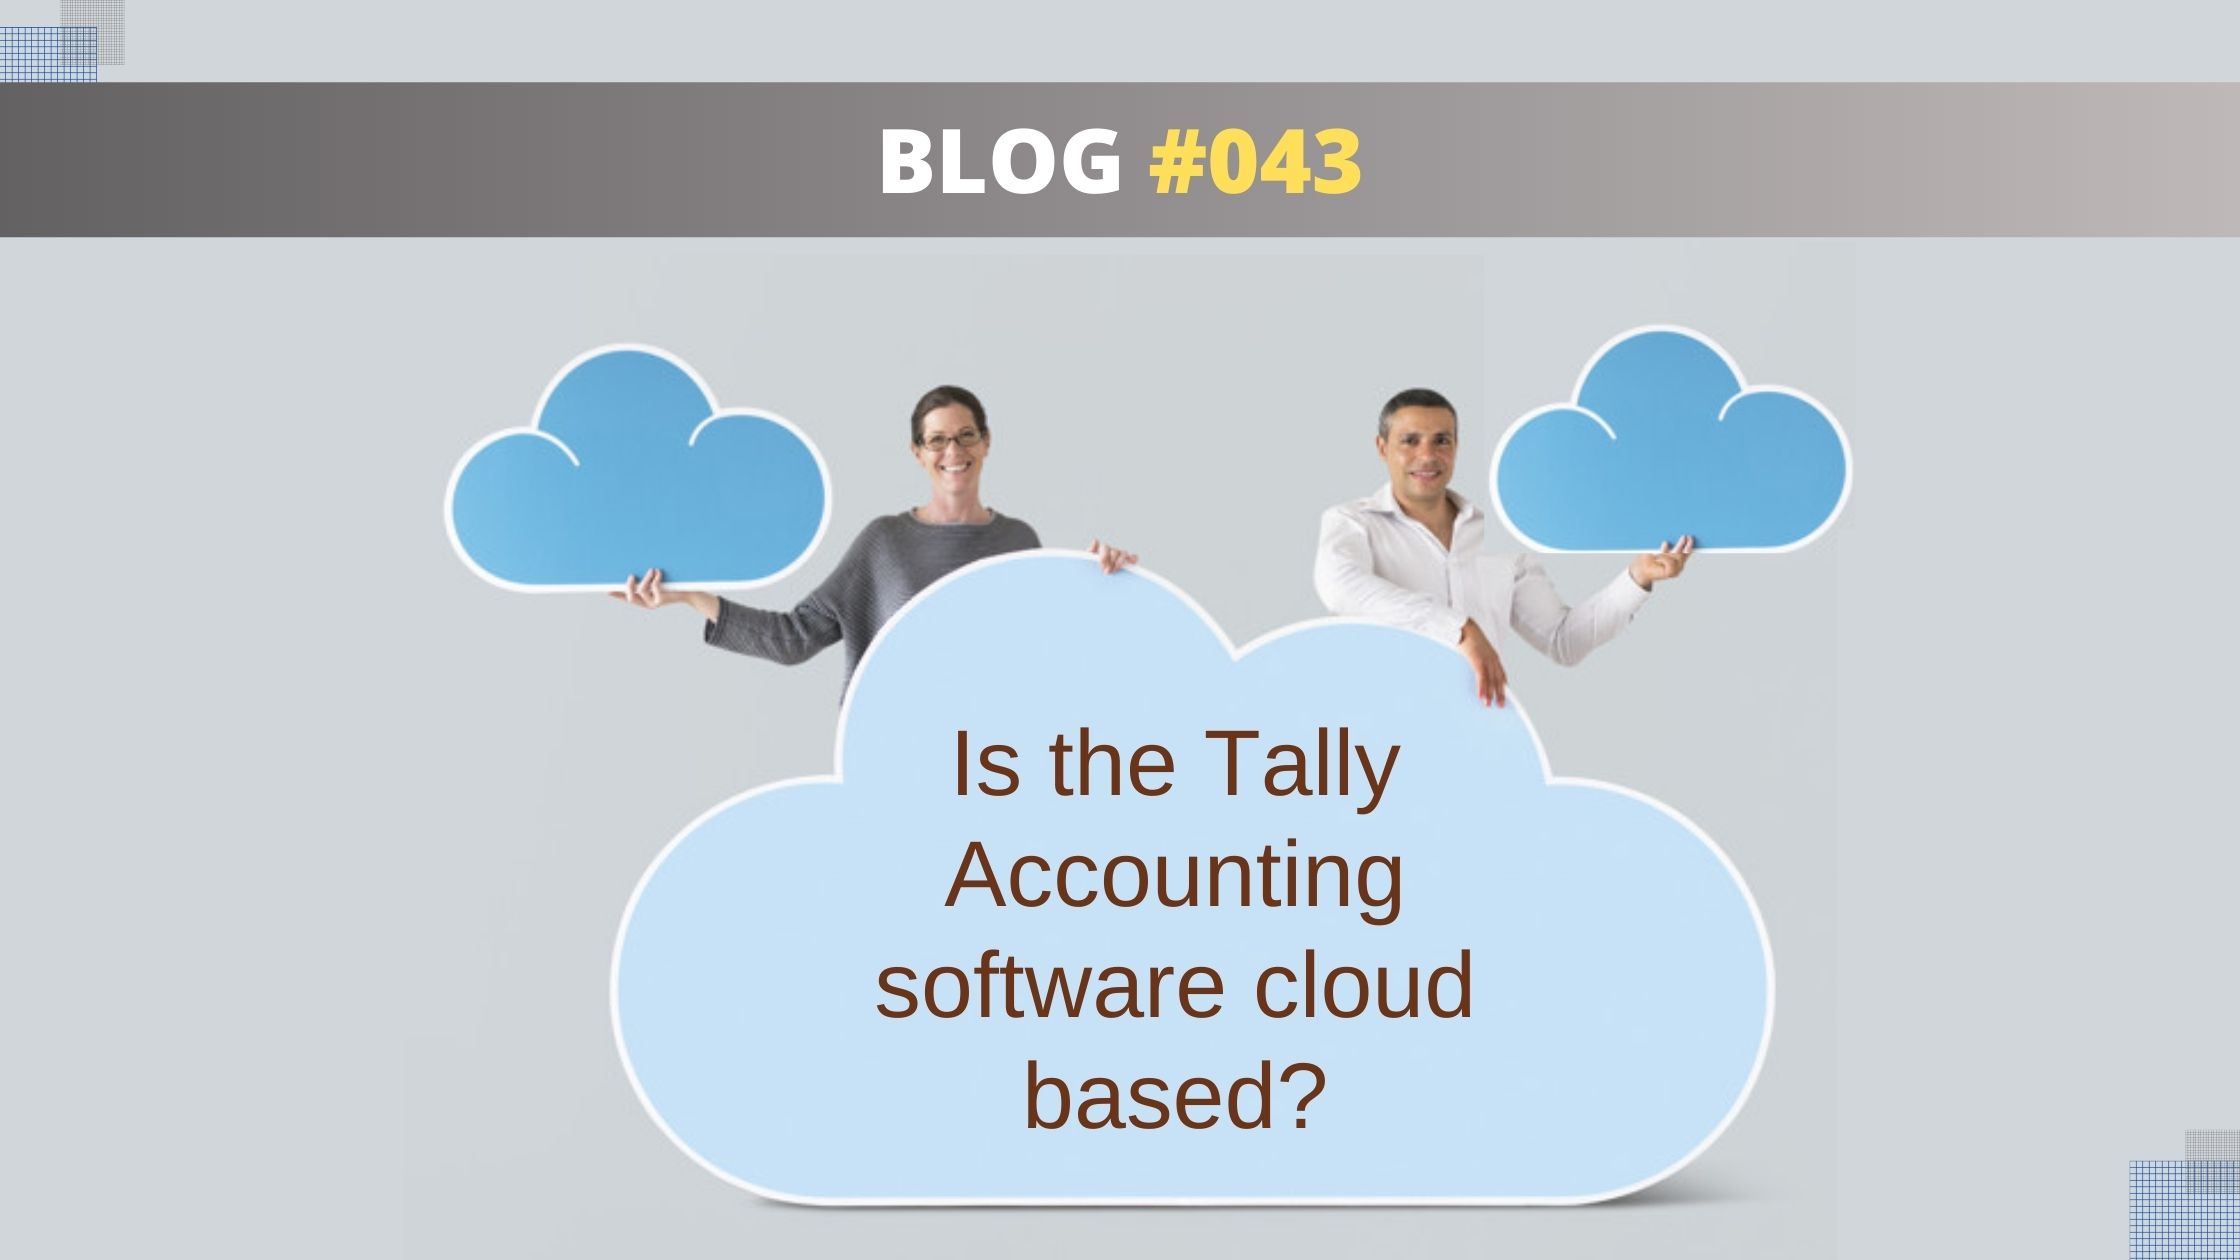 Tally software cloud based